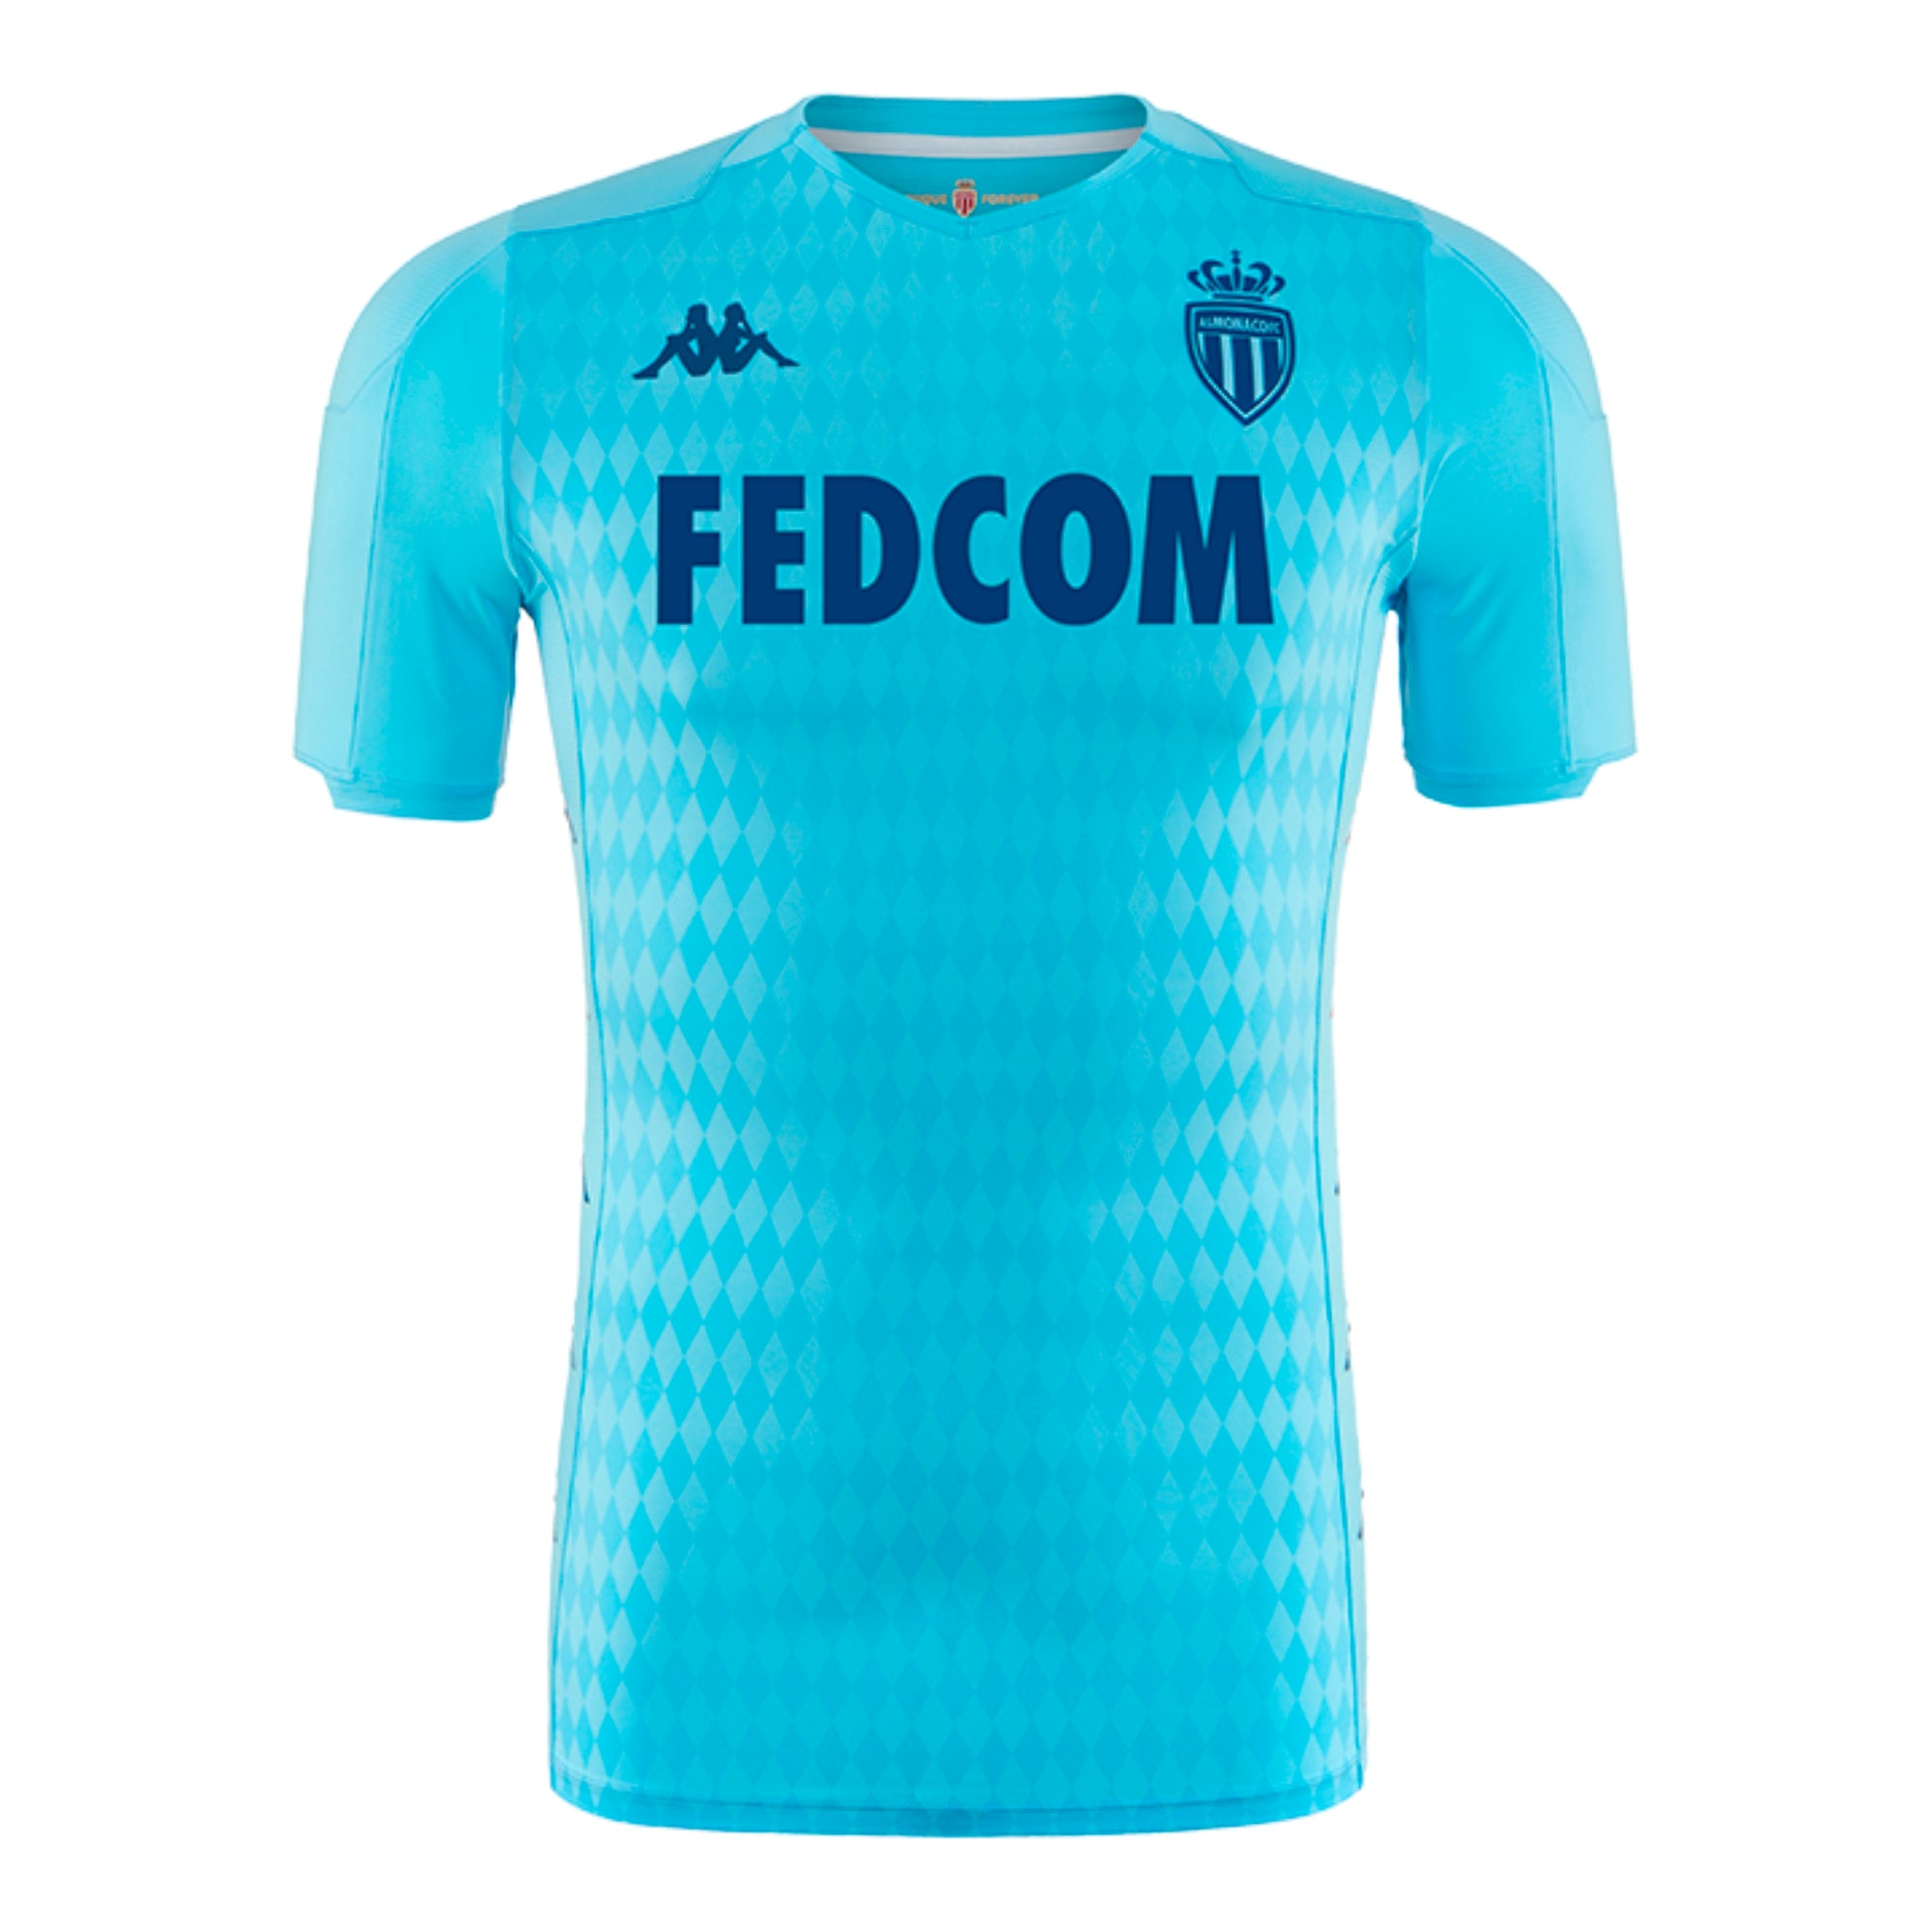 AS Monaco professional level third shirt in sky blue with subtle toned patterned design in the main body. Dark blue Kappa, AS Monaco and FEDCOM sponsor logo on the chest.